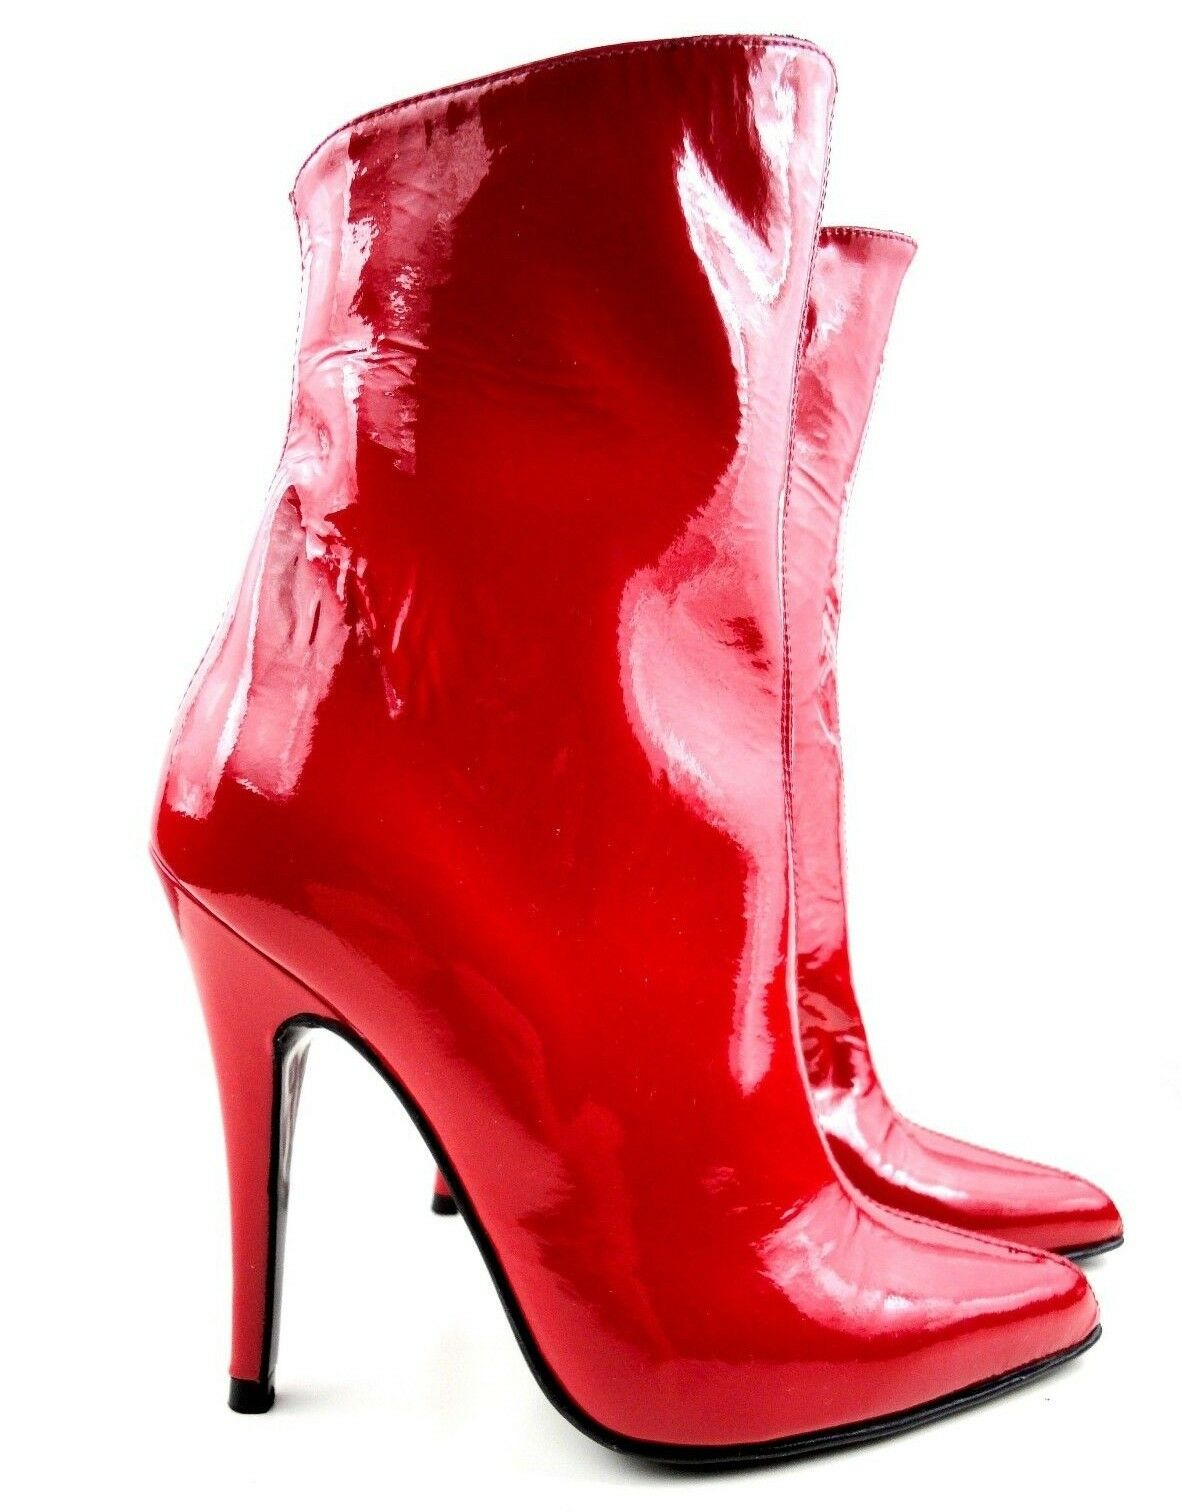 GIOHEL ANKLE CUSTOM BOOTIES BOOTS STIEFEL STIVALI PATENT LEATHER ROSSO RED 39